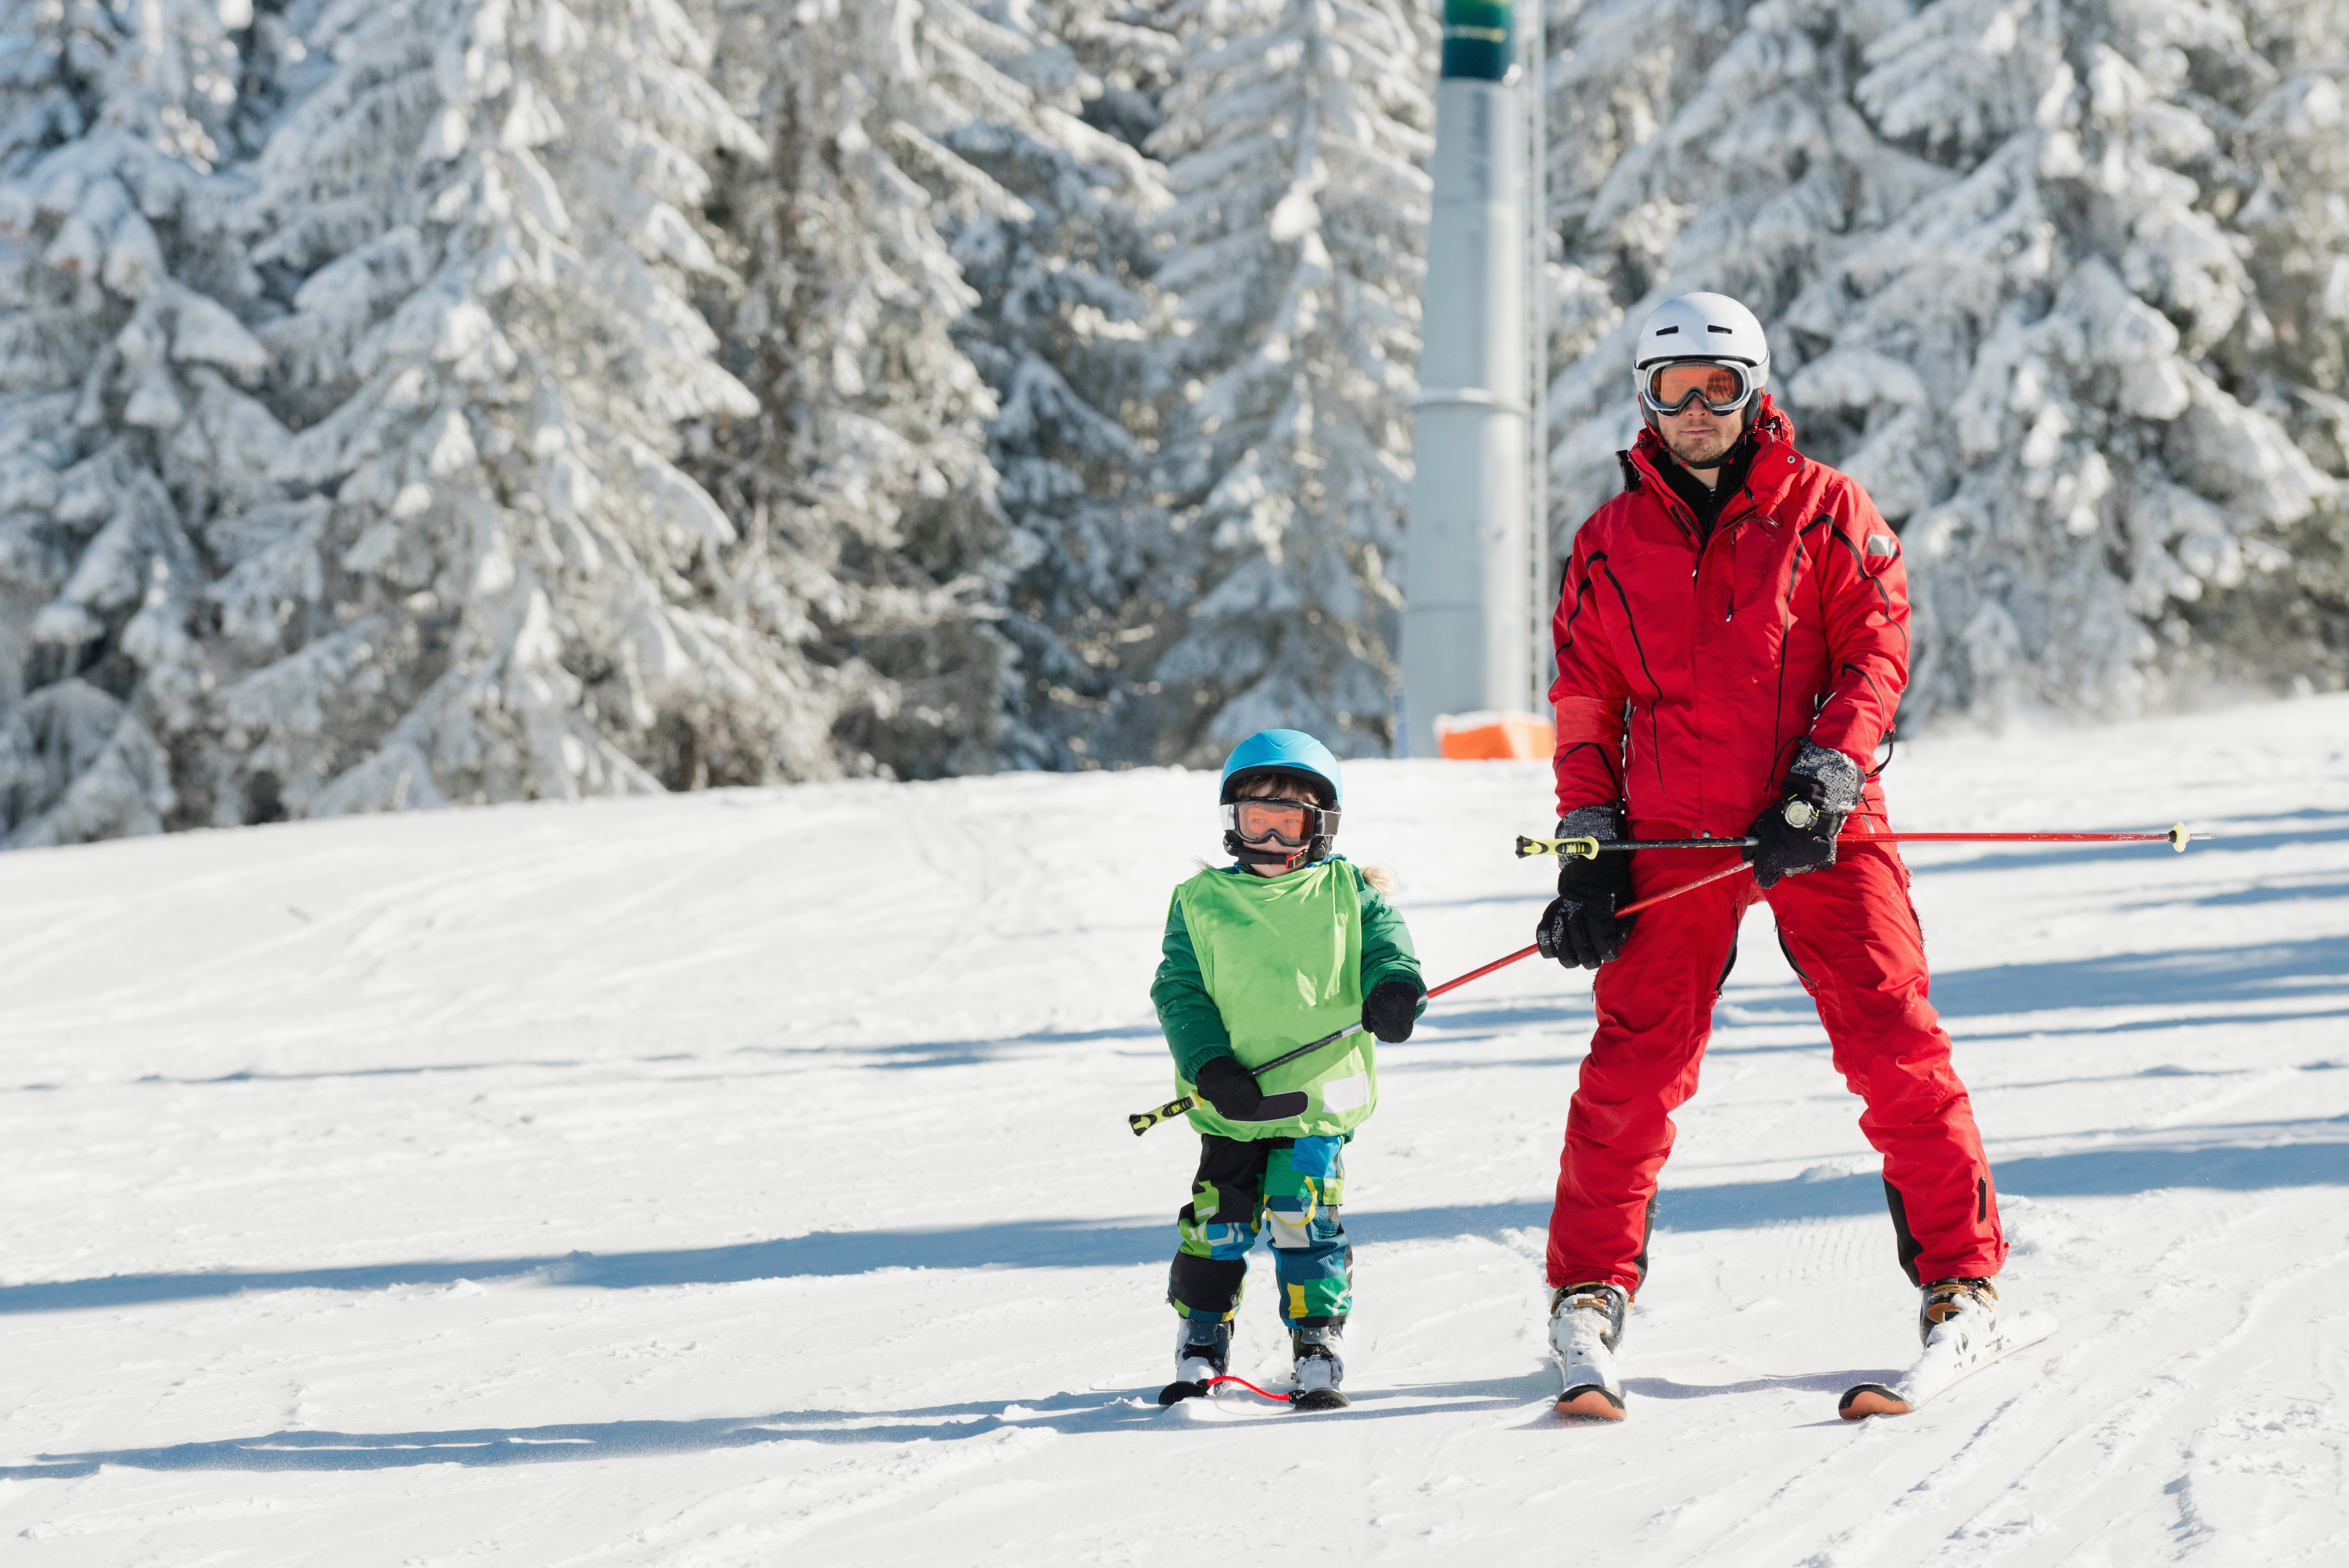 Ski instructor learning little boy skiing